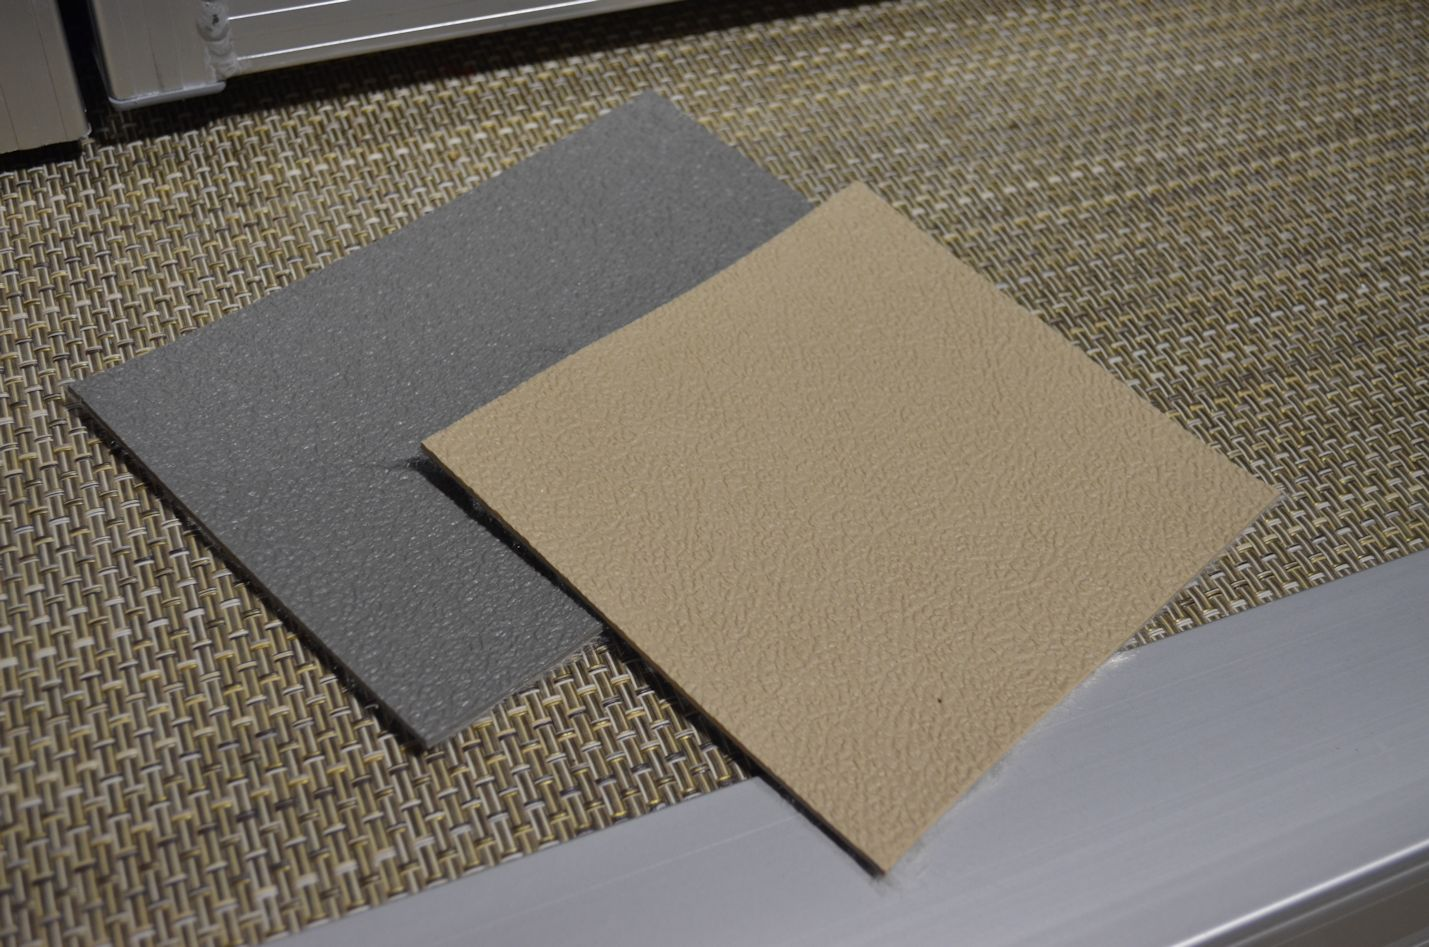 Pontoon carpet vs vinyl carpet vidalondon for Carpet and vinyl flooring